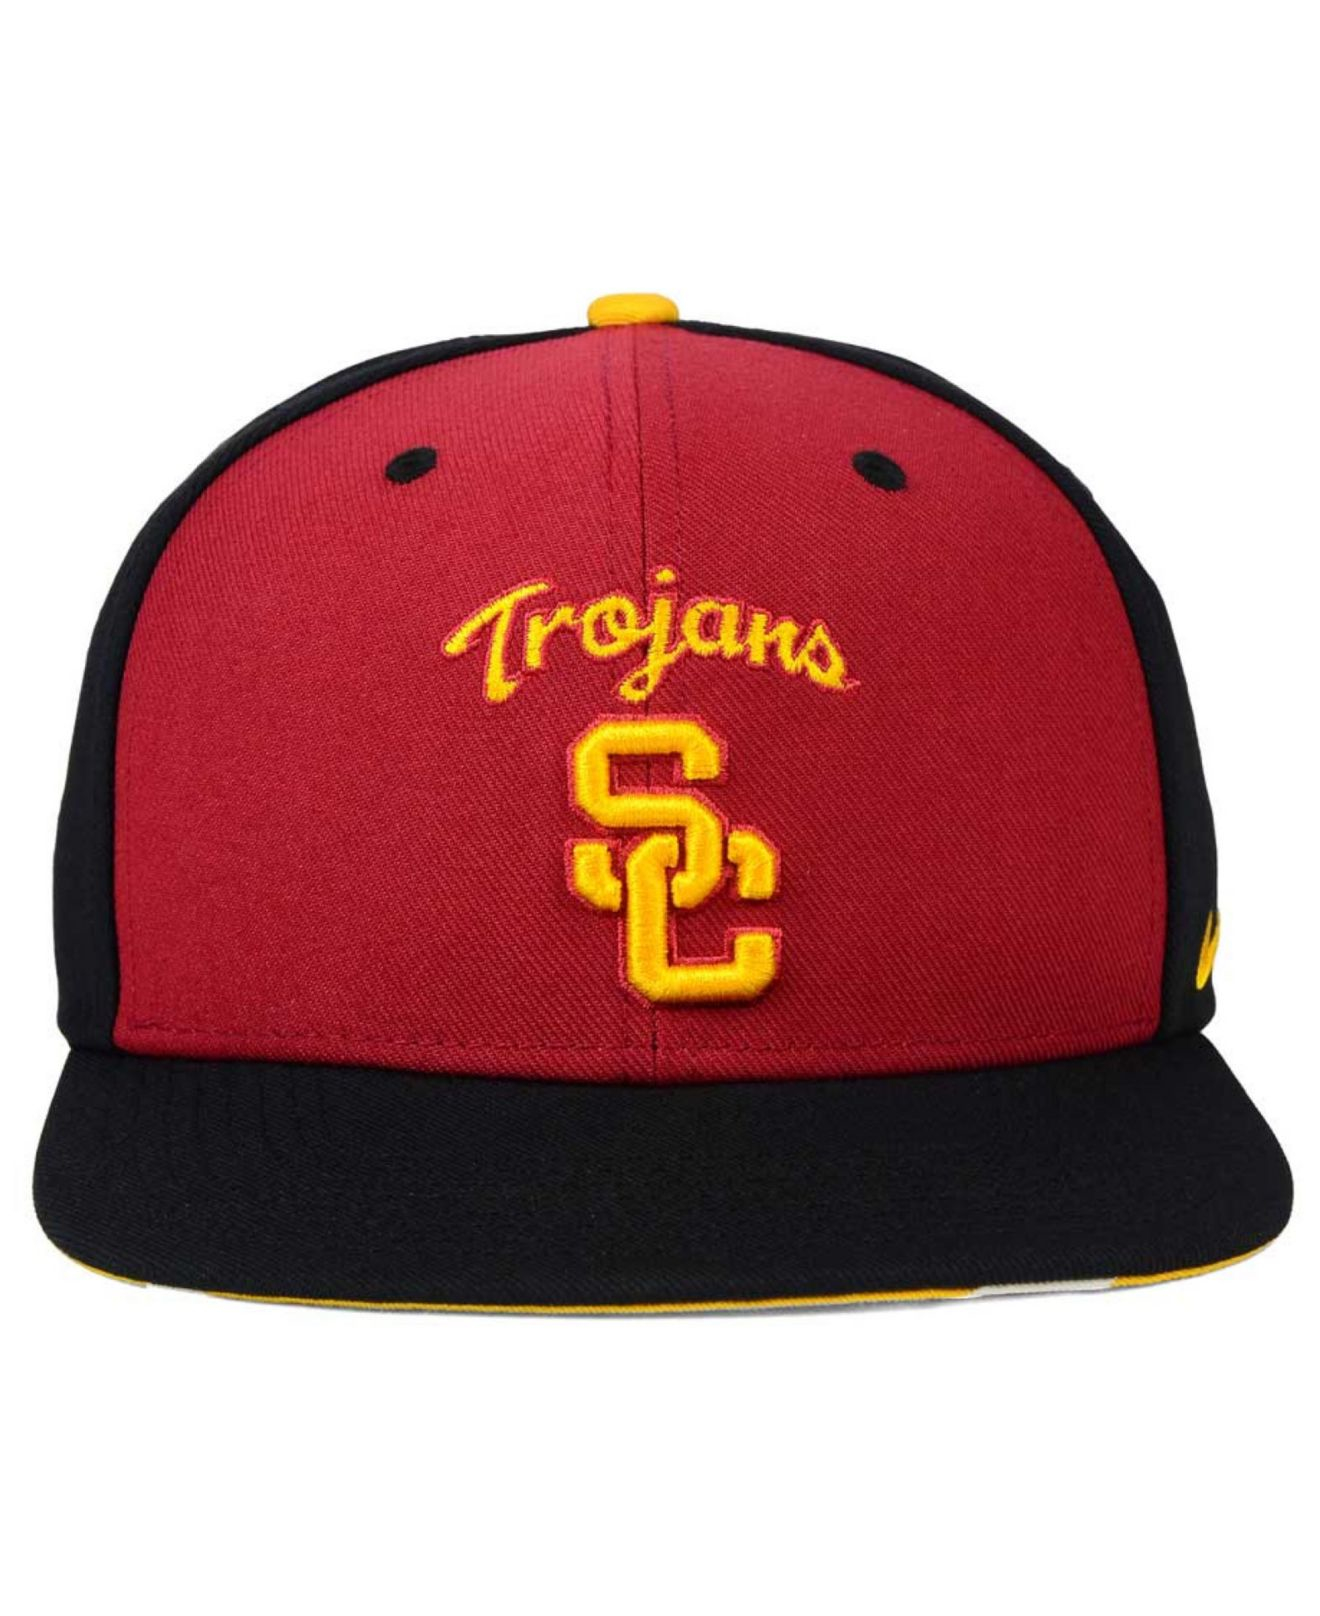 Lyst - Nike Usc Trojans Pro Verbiage Snapback Cap in Red for Men be2cc144527